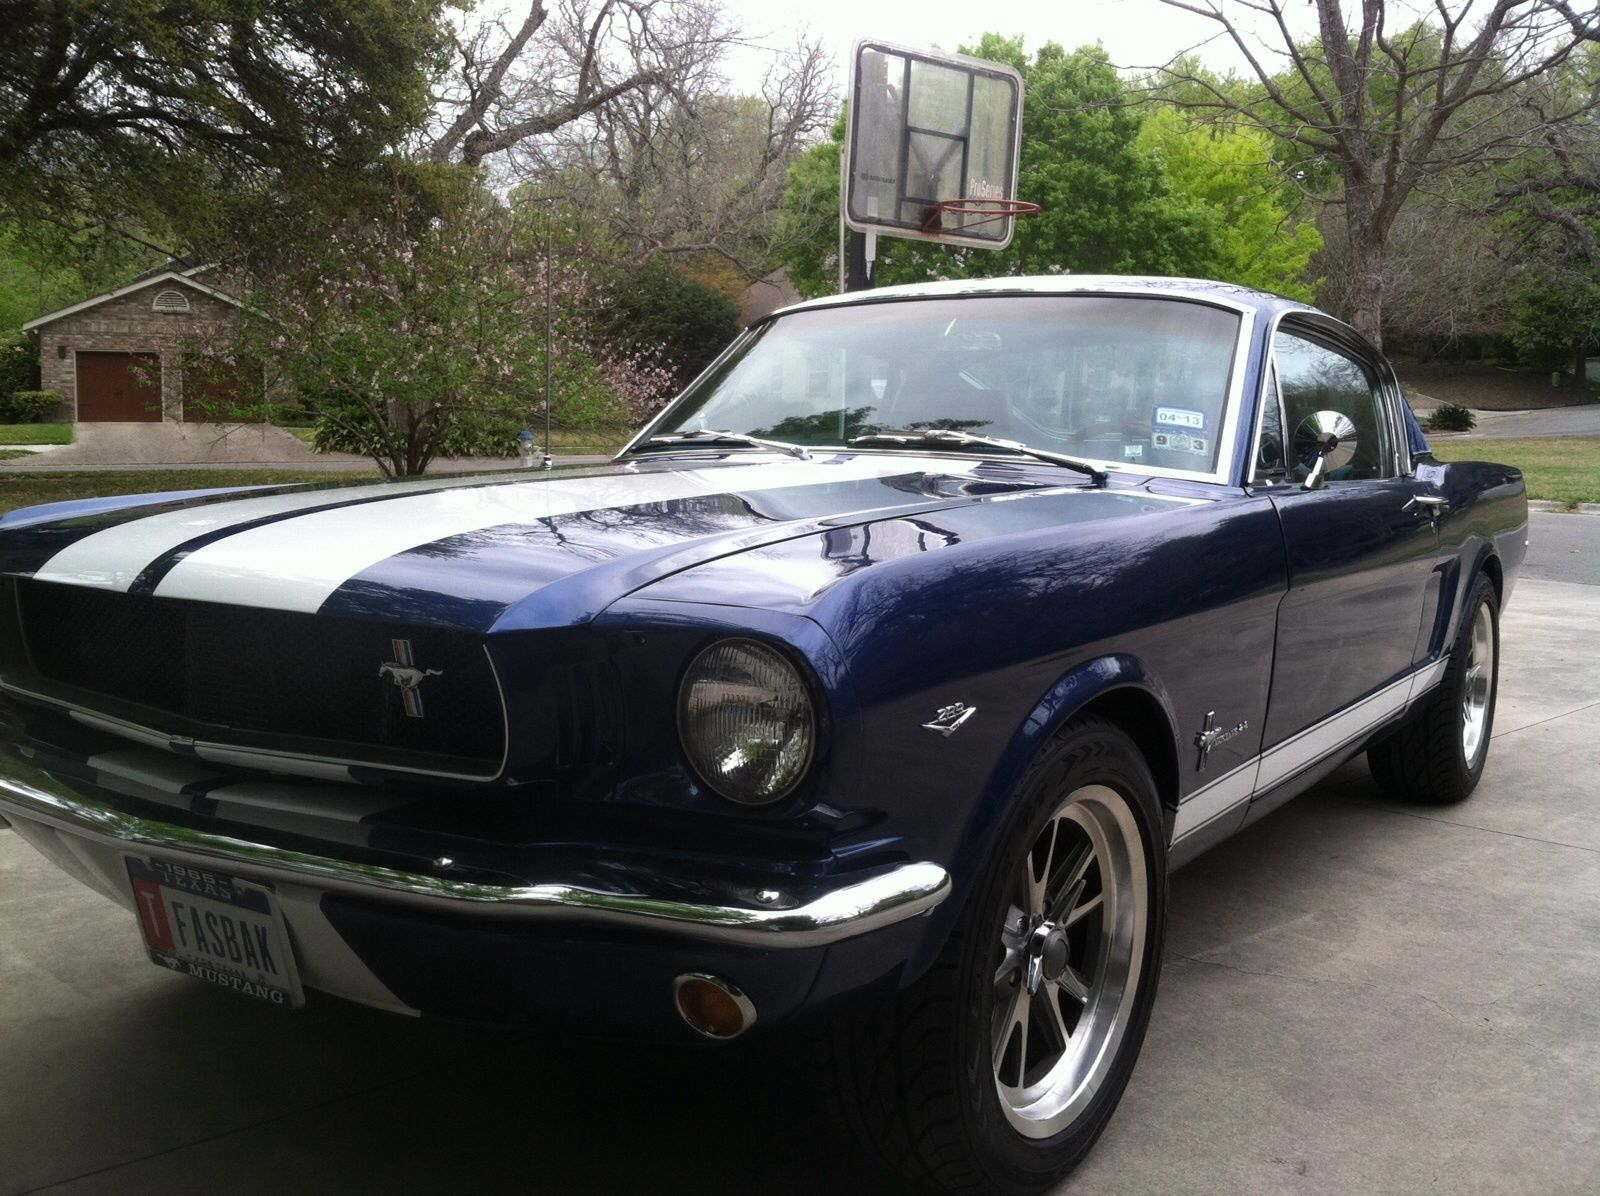 1965 Ford Mustang Fastback Shelby pro touring-122